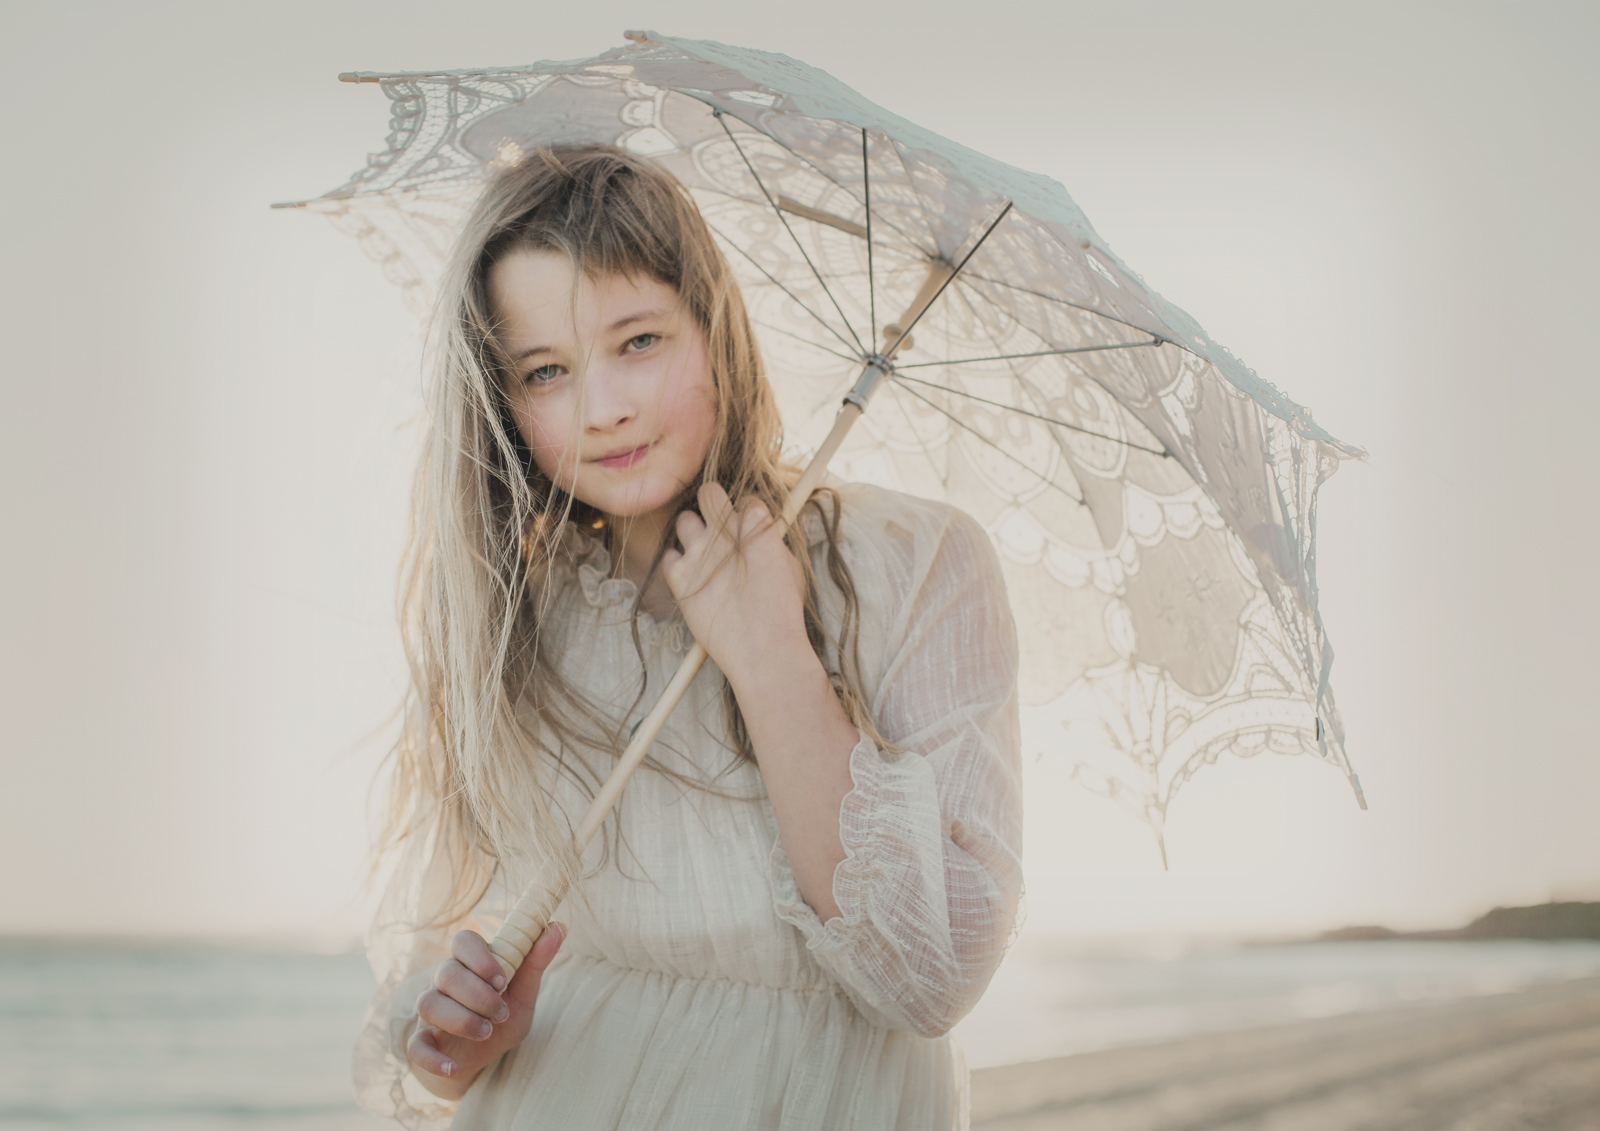 Vintage lace umbrella used at Tween Photo Shoot